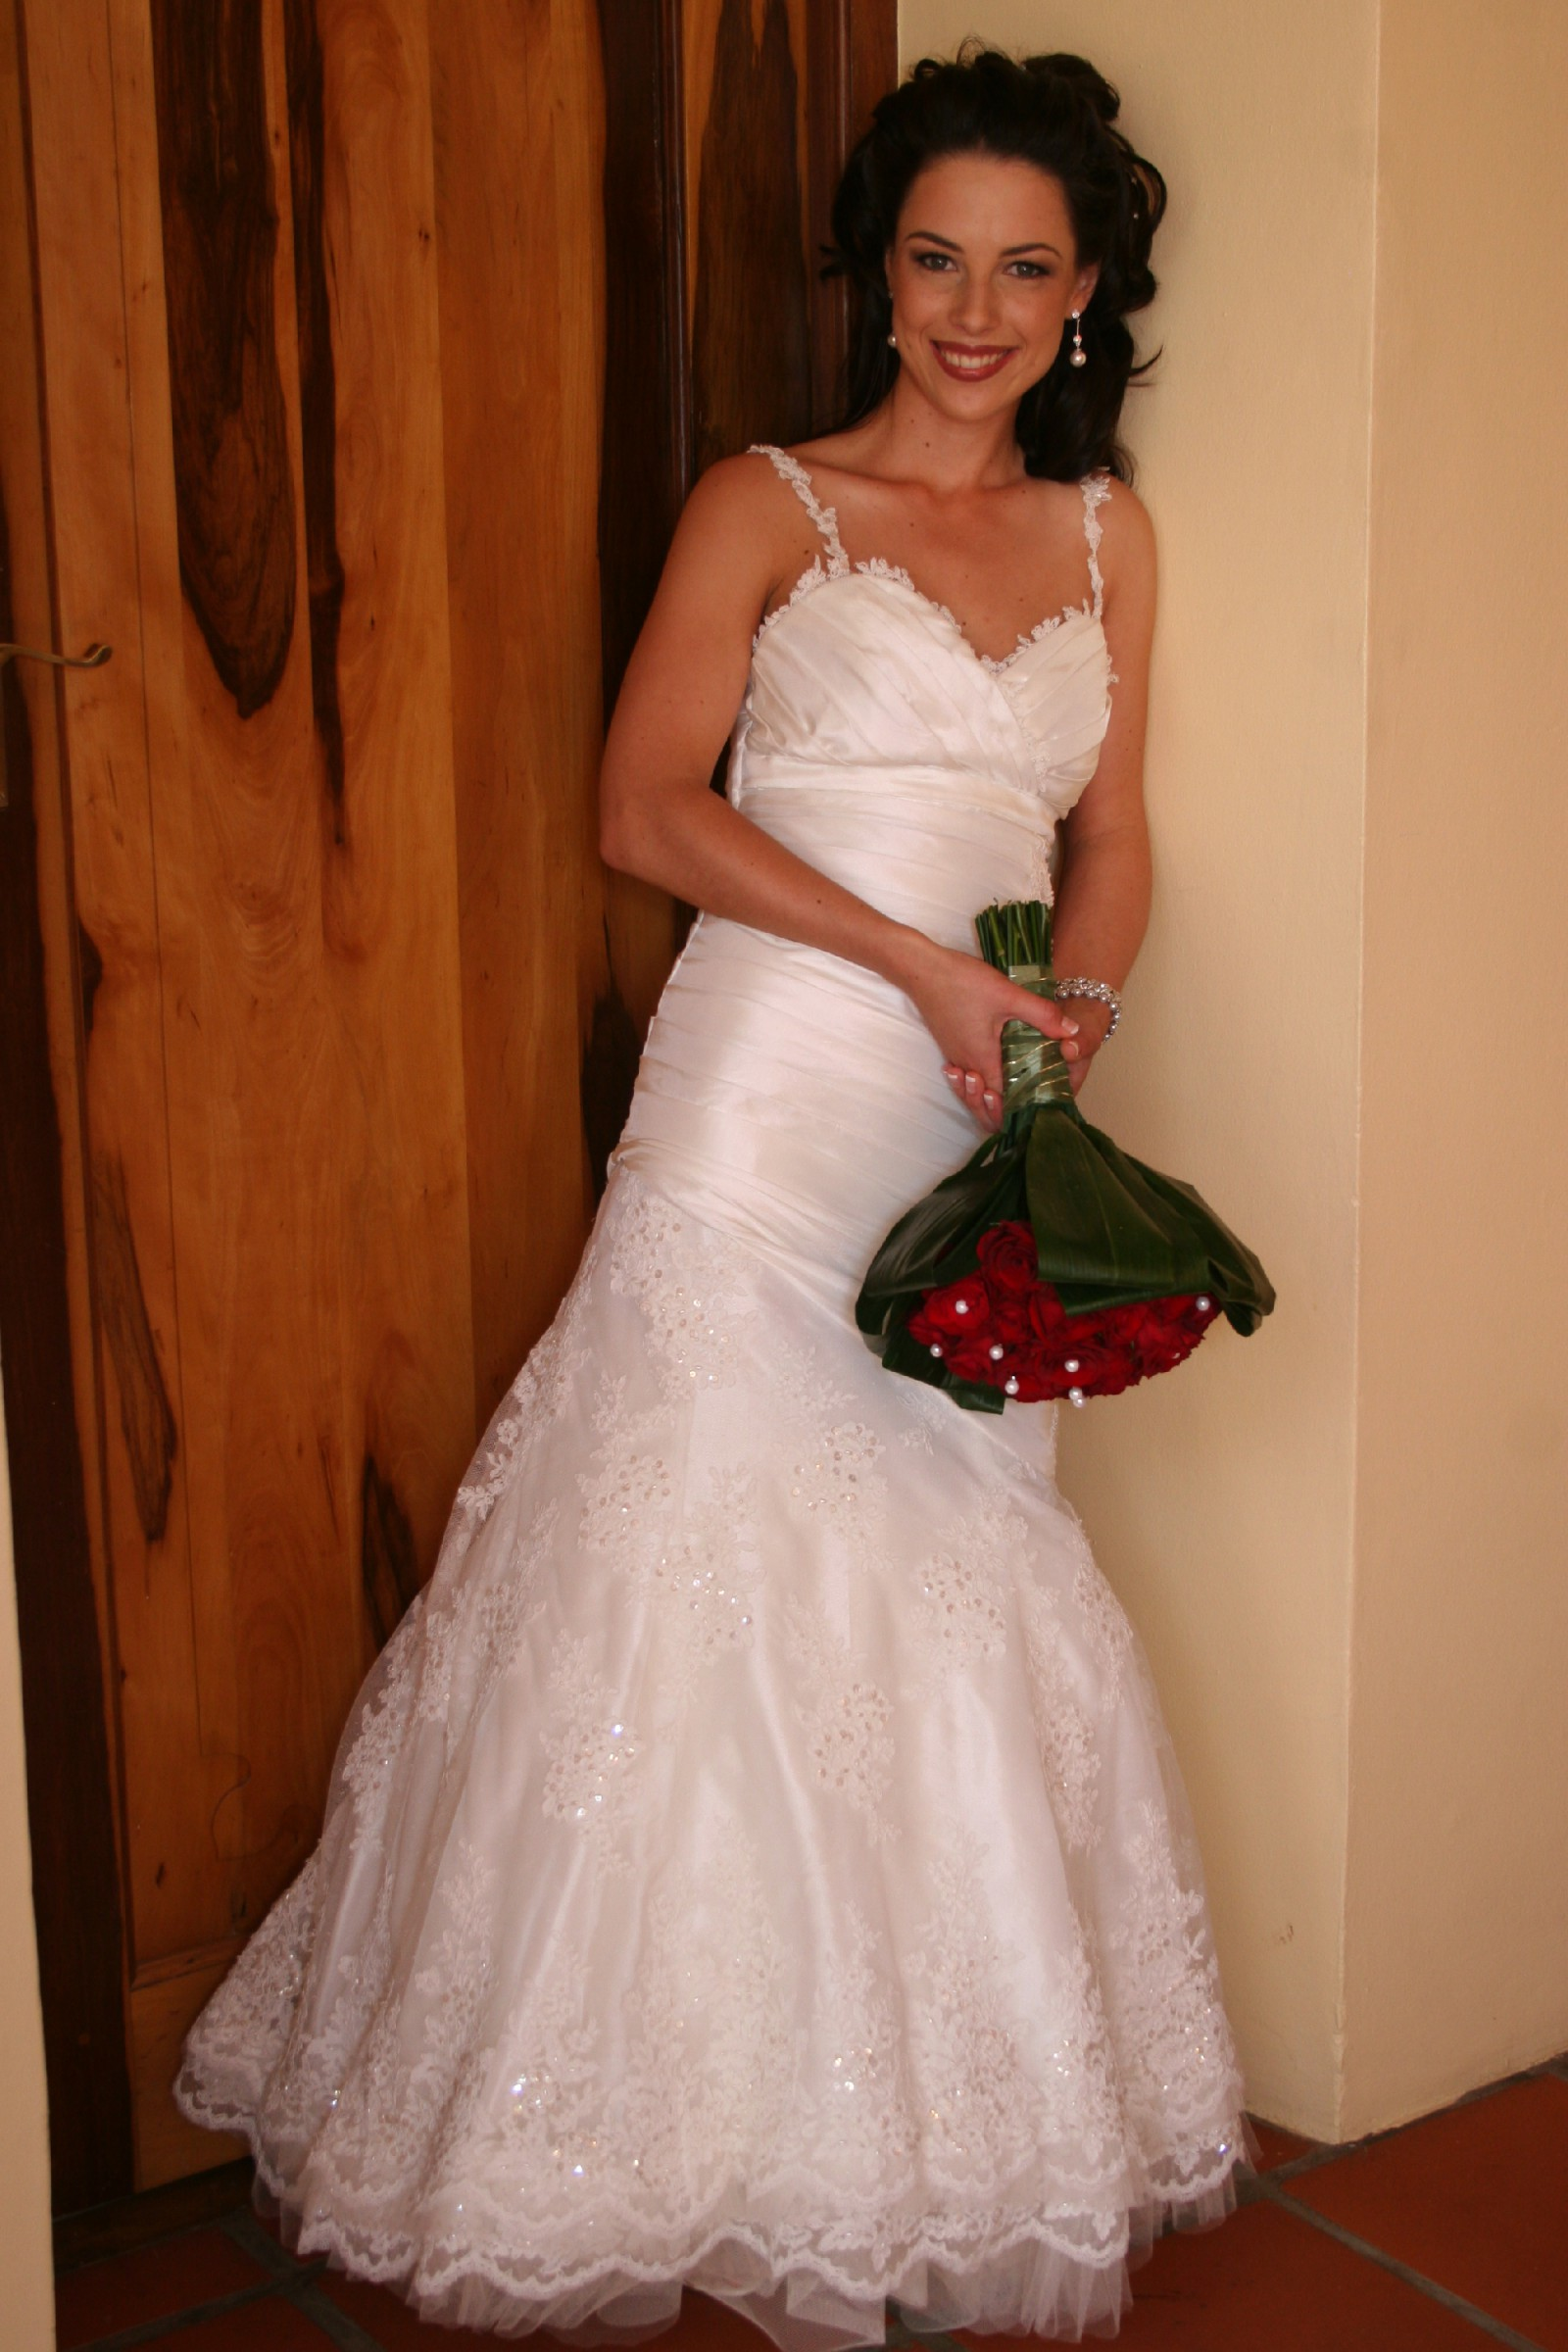 Bridal Gowns Vanderbijlpark : Christine o kennedy modern wedding dress on sale off